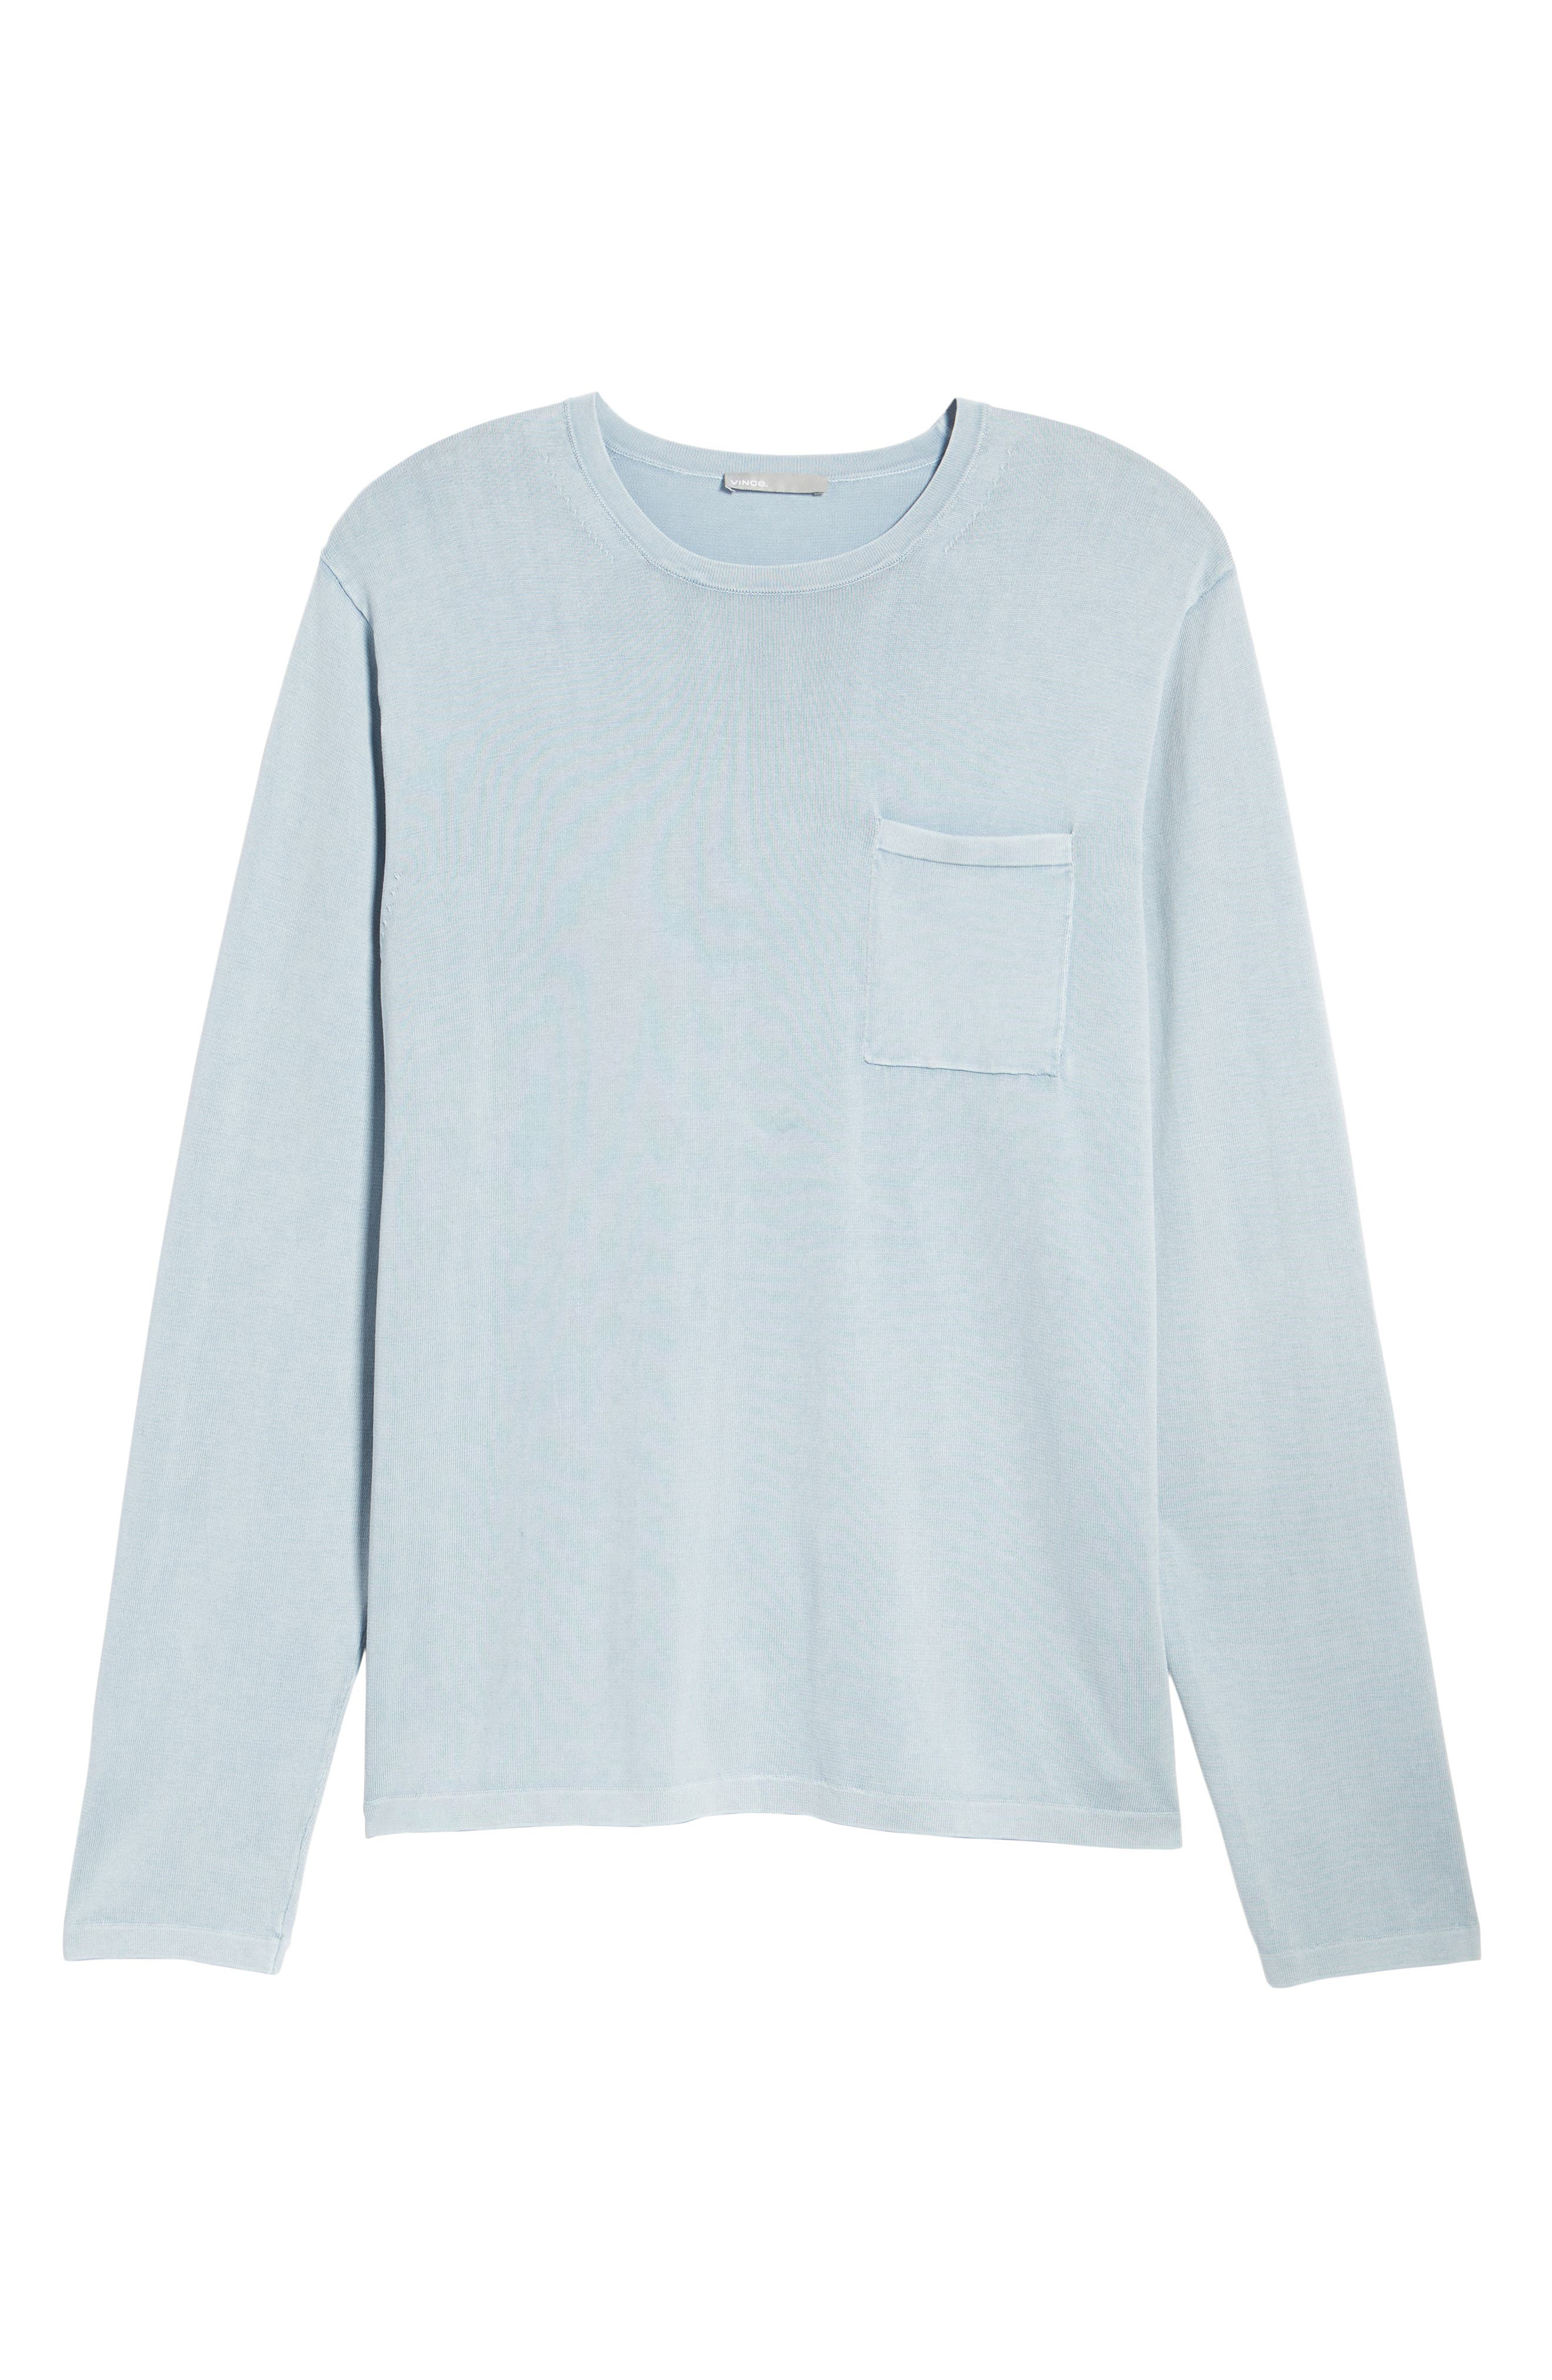 Crewneck Cotton Sweater,                             Alternate thumbnail 6, color,                             ARCTIC